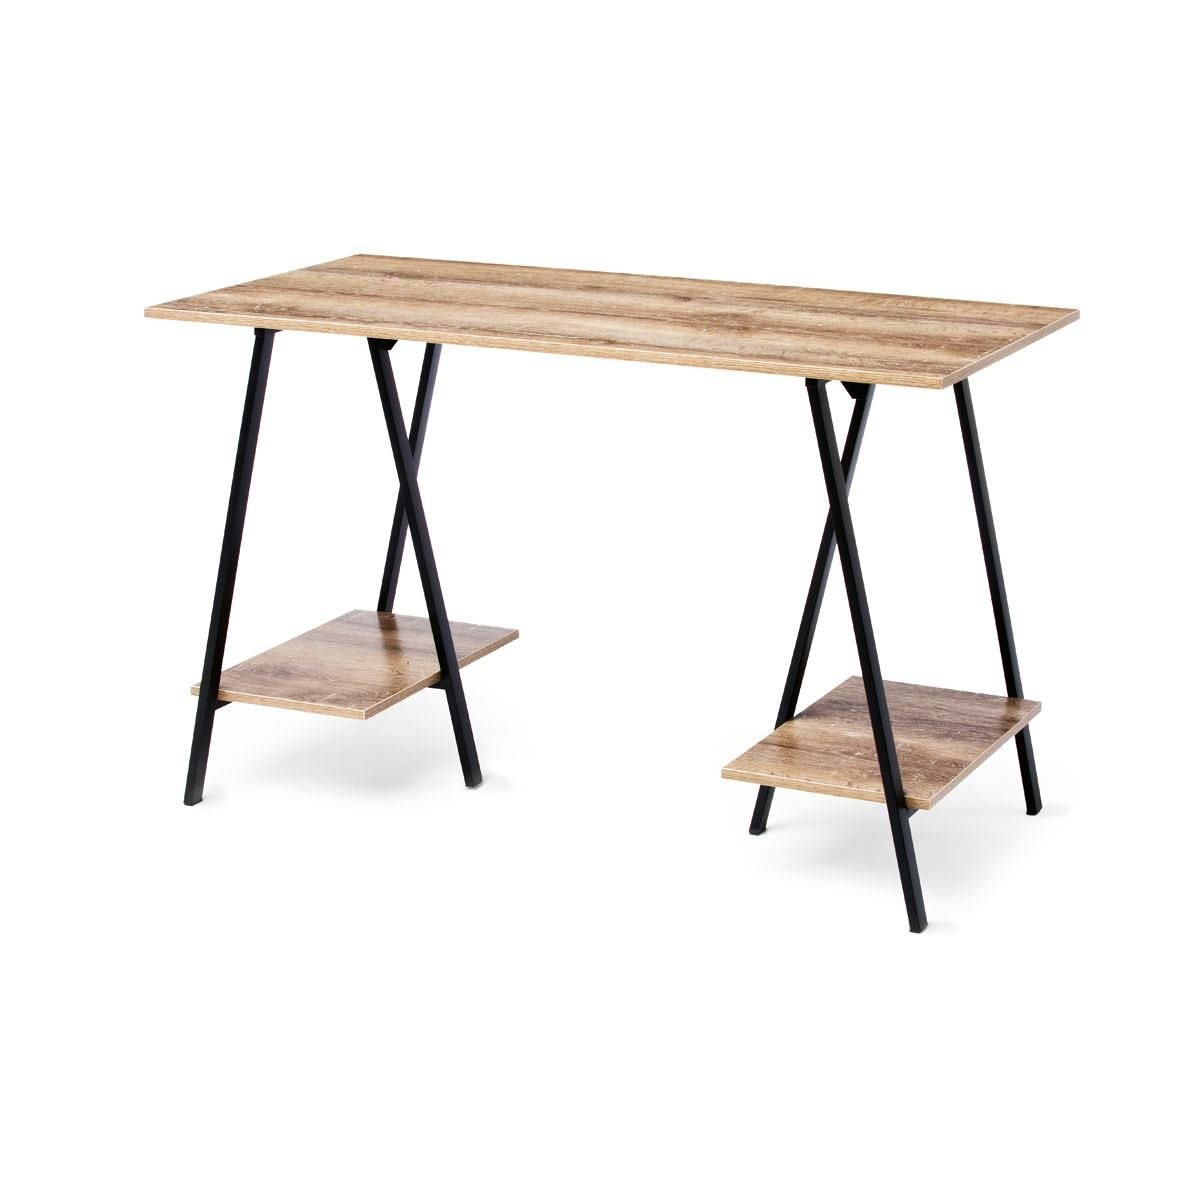 Kmart Furniture Kitchen Table Http Wwwkmartcomau Product Industrial Trestle Desk 824477